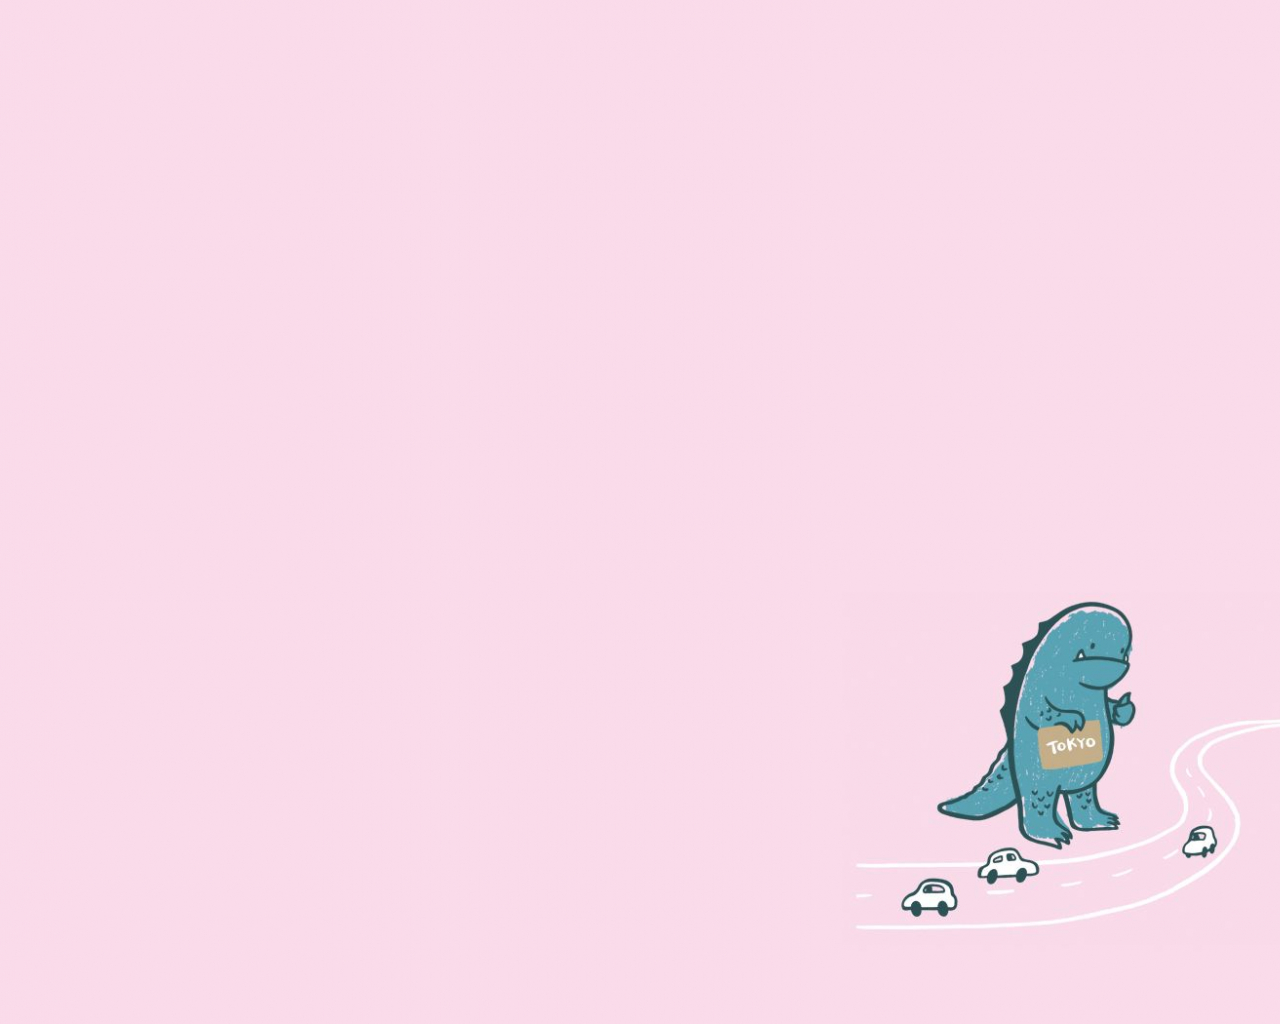 Free Download Godzilla Cute Laptop Wallpaper Cute Desktop Wallpaper Cartoon 1680x1050 For Your Desktop Mobile Tablet Explore 55 Hd Simple Aesthetic Wallpapers Hd Simple Aesthetic Wallpapers Simple Aesthetic Wallpapers